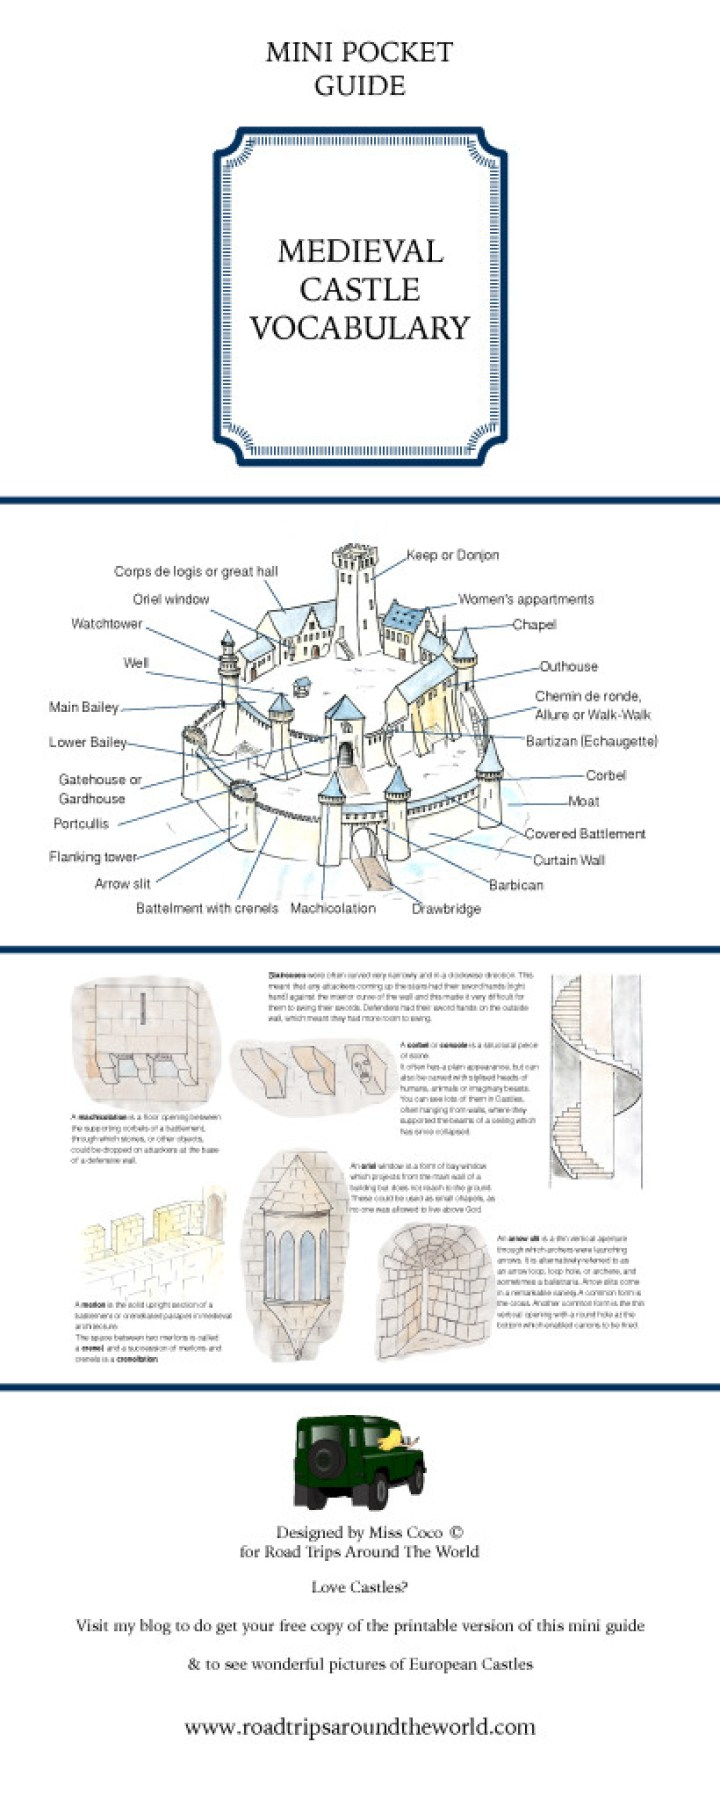 Pocket guide - Medieval Castle Vocabulary presentation